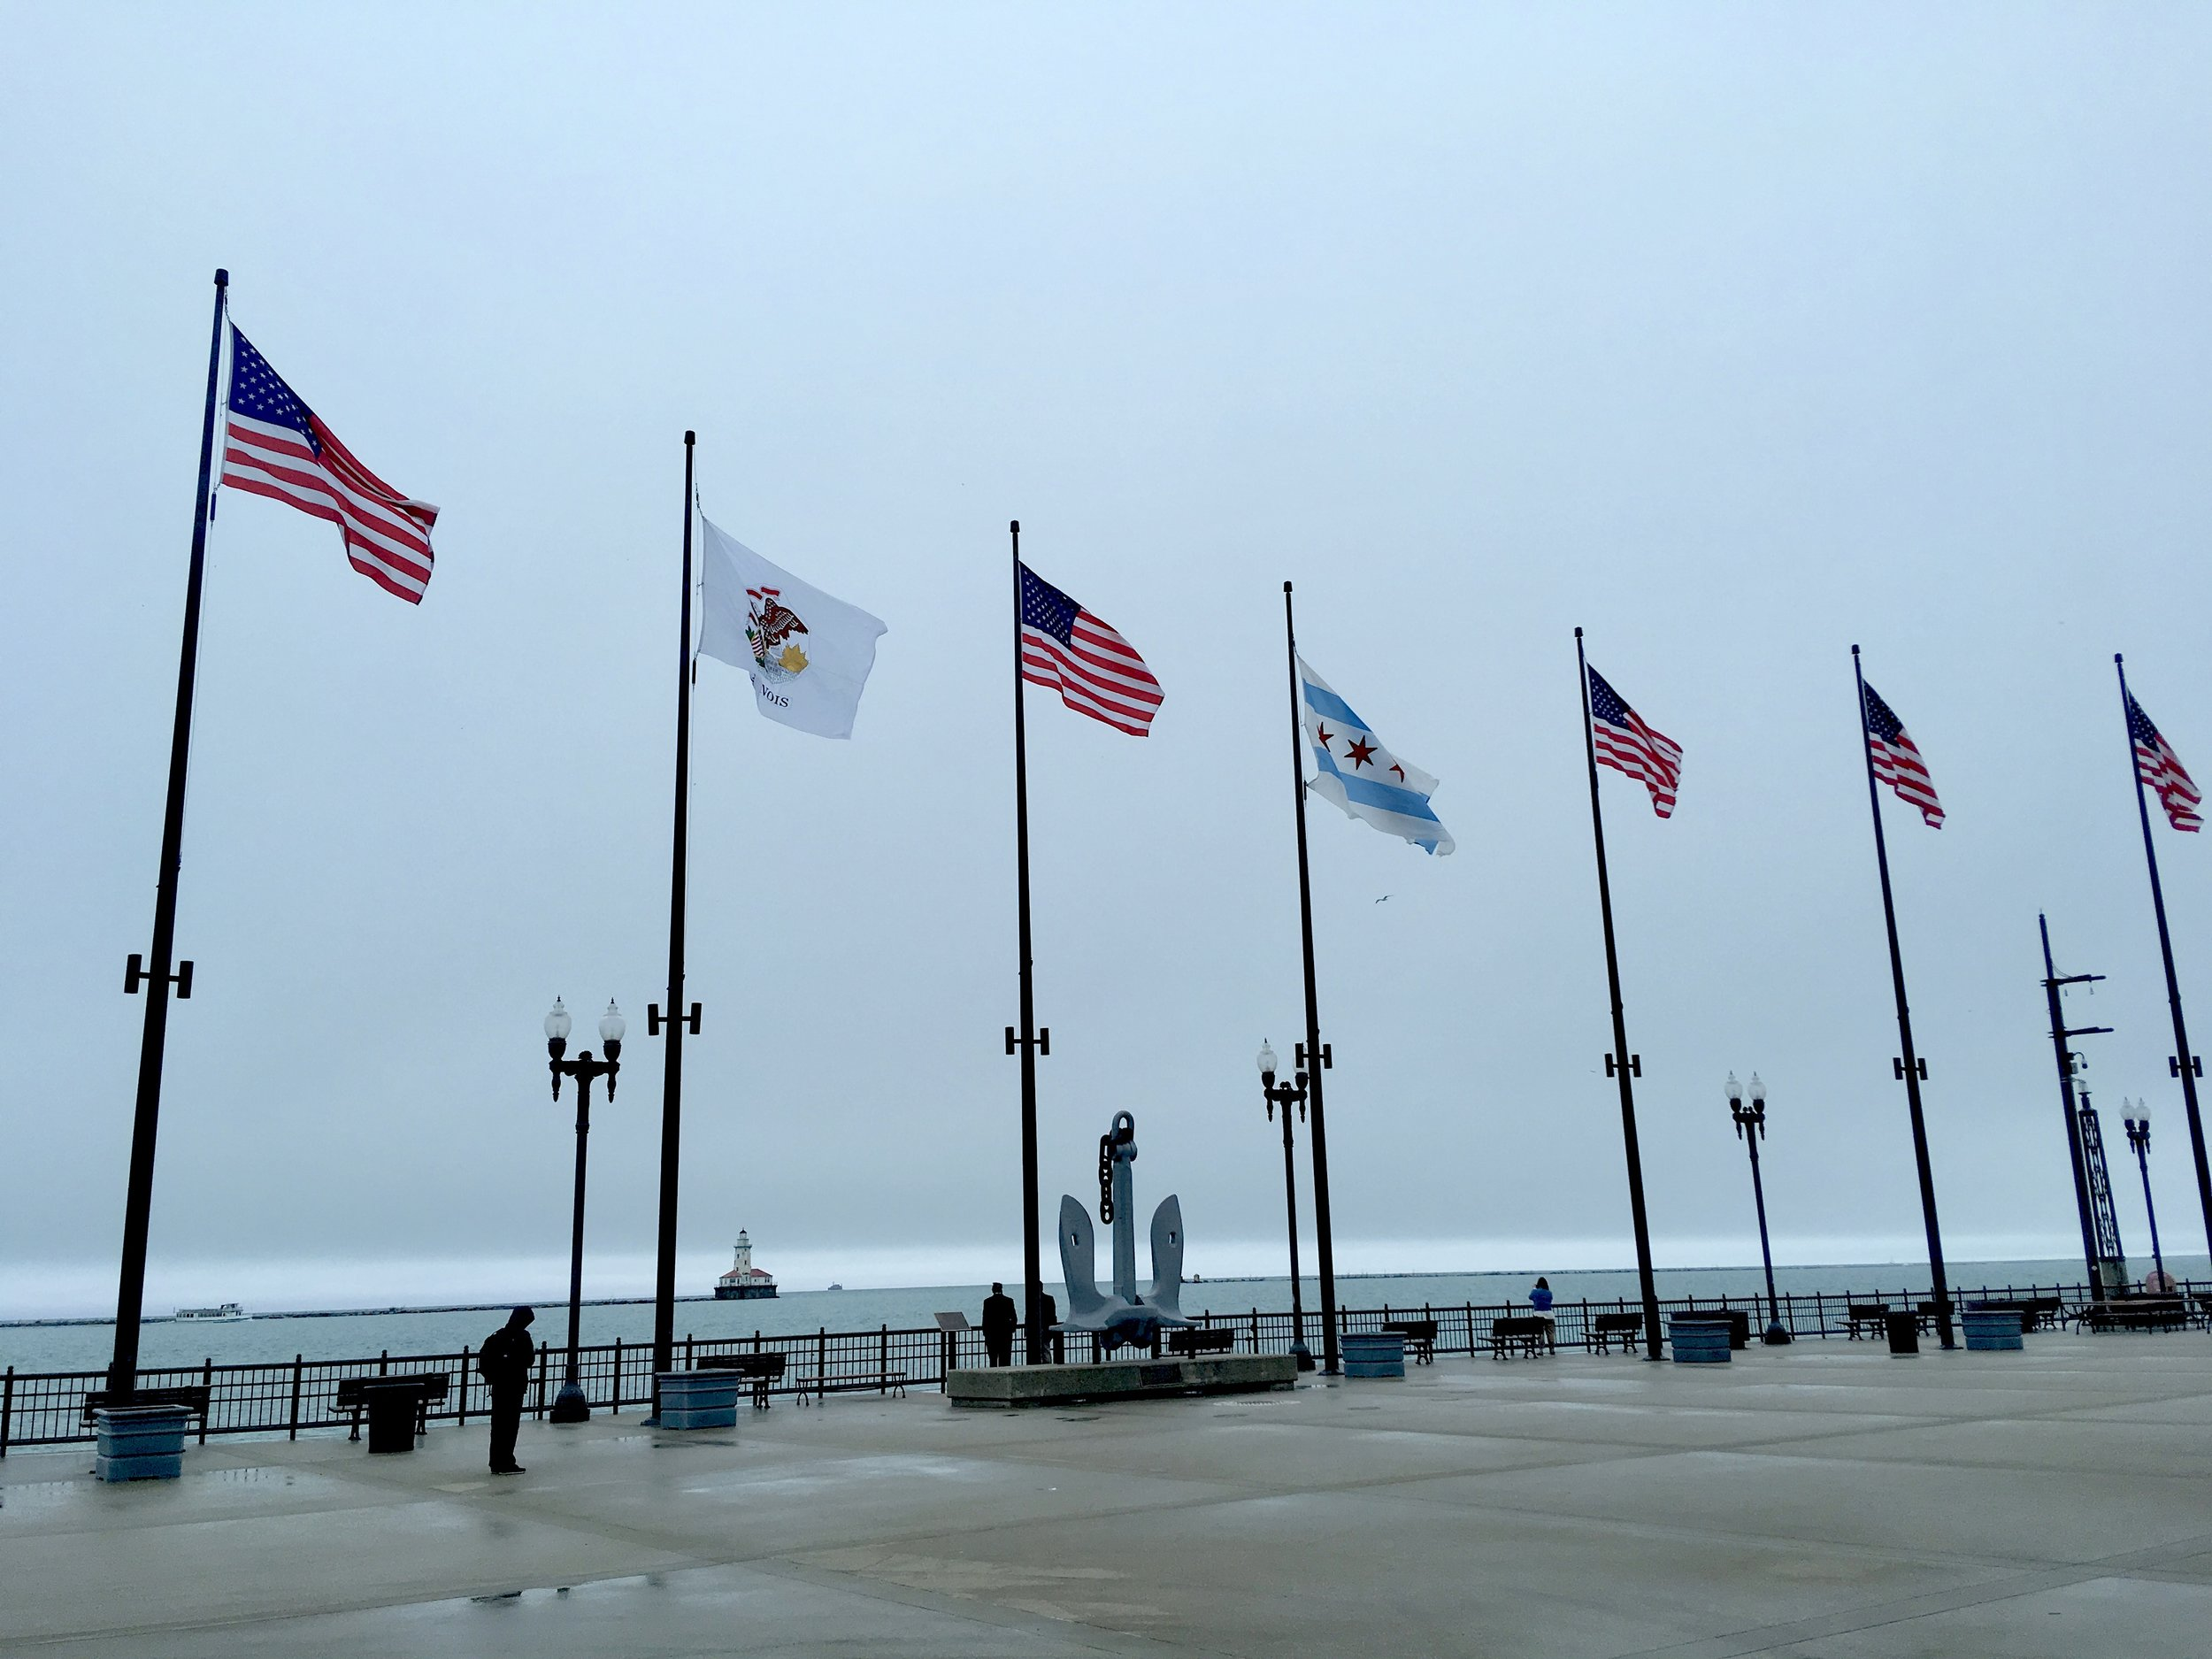 Chicago's Navy Pier - Things to do in Chicago